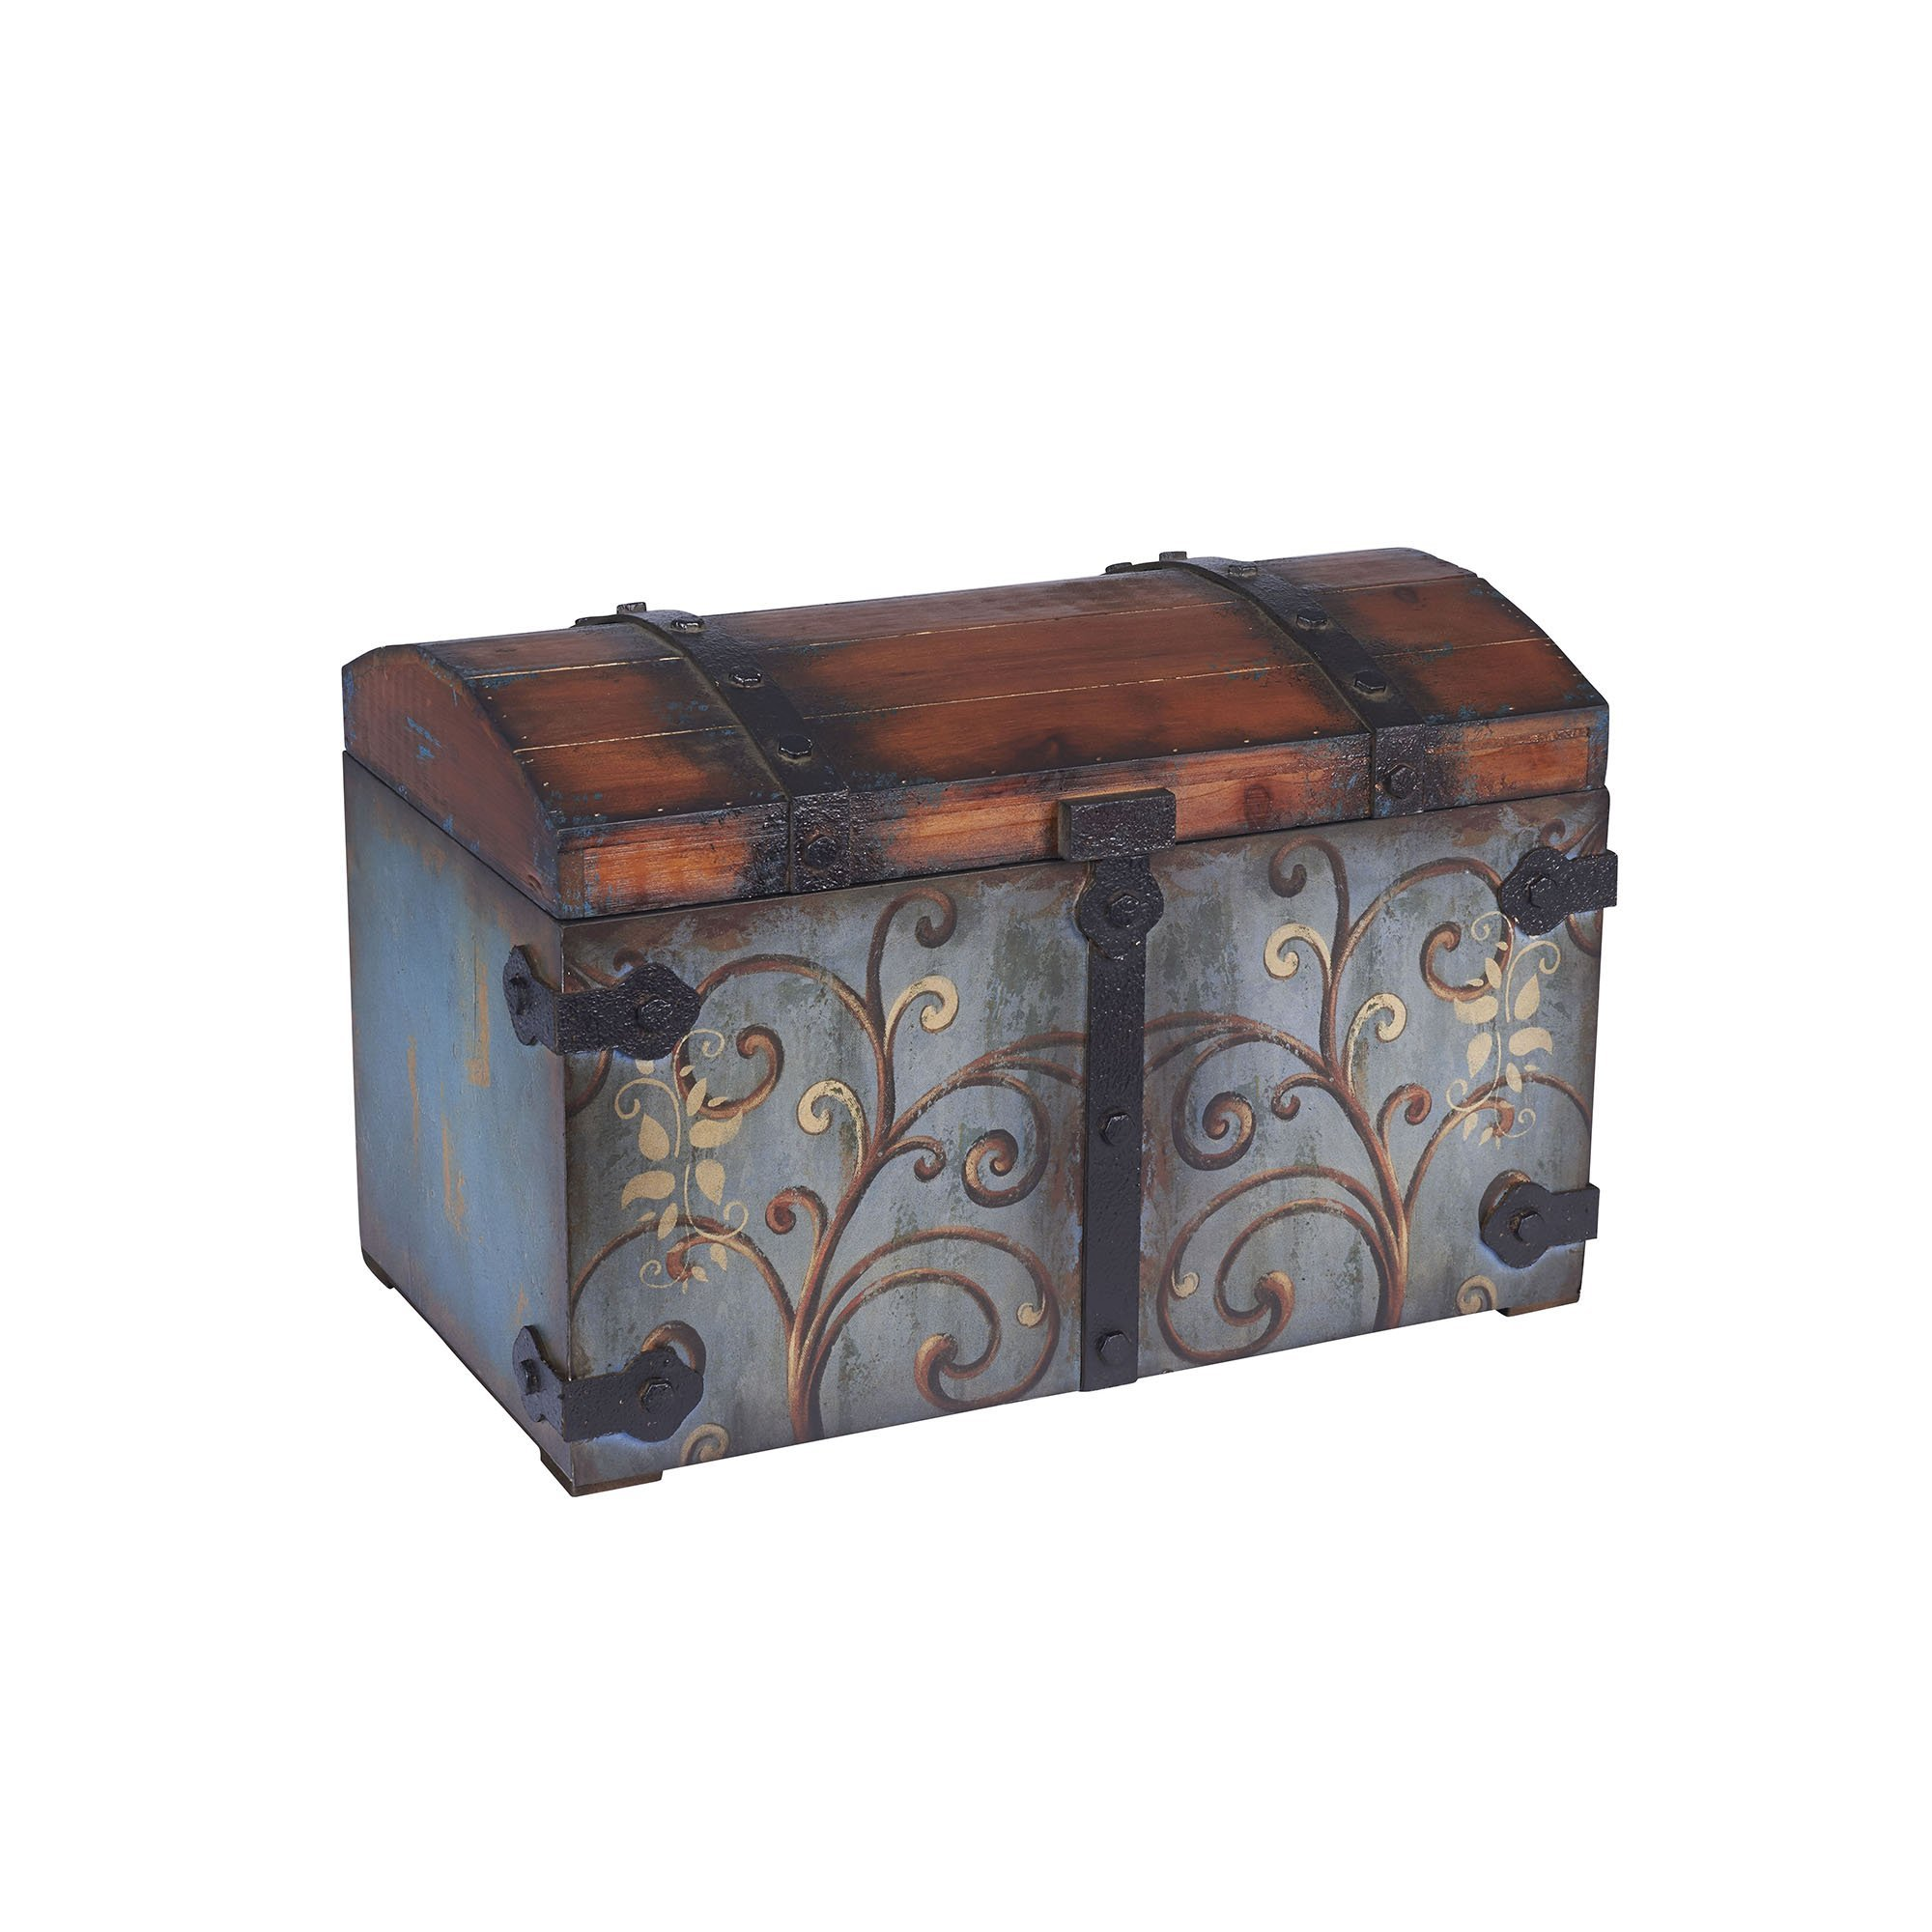 Household Essentials 9504-1 Vintage Wood Storage Trunk, Small, Blue Body/Brown Lid/Floral Design